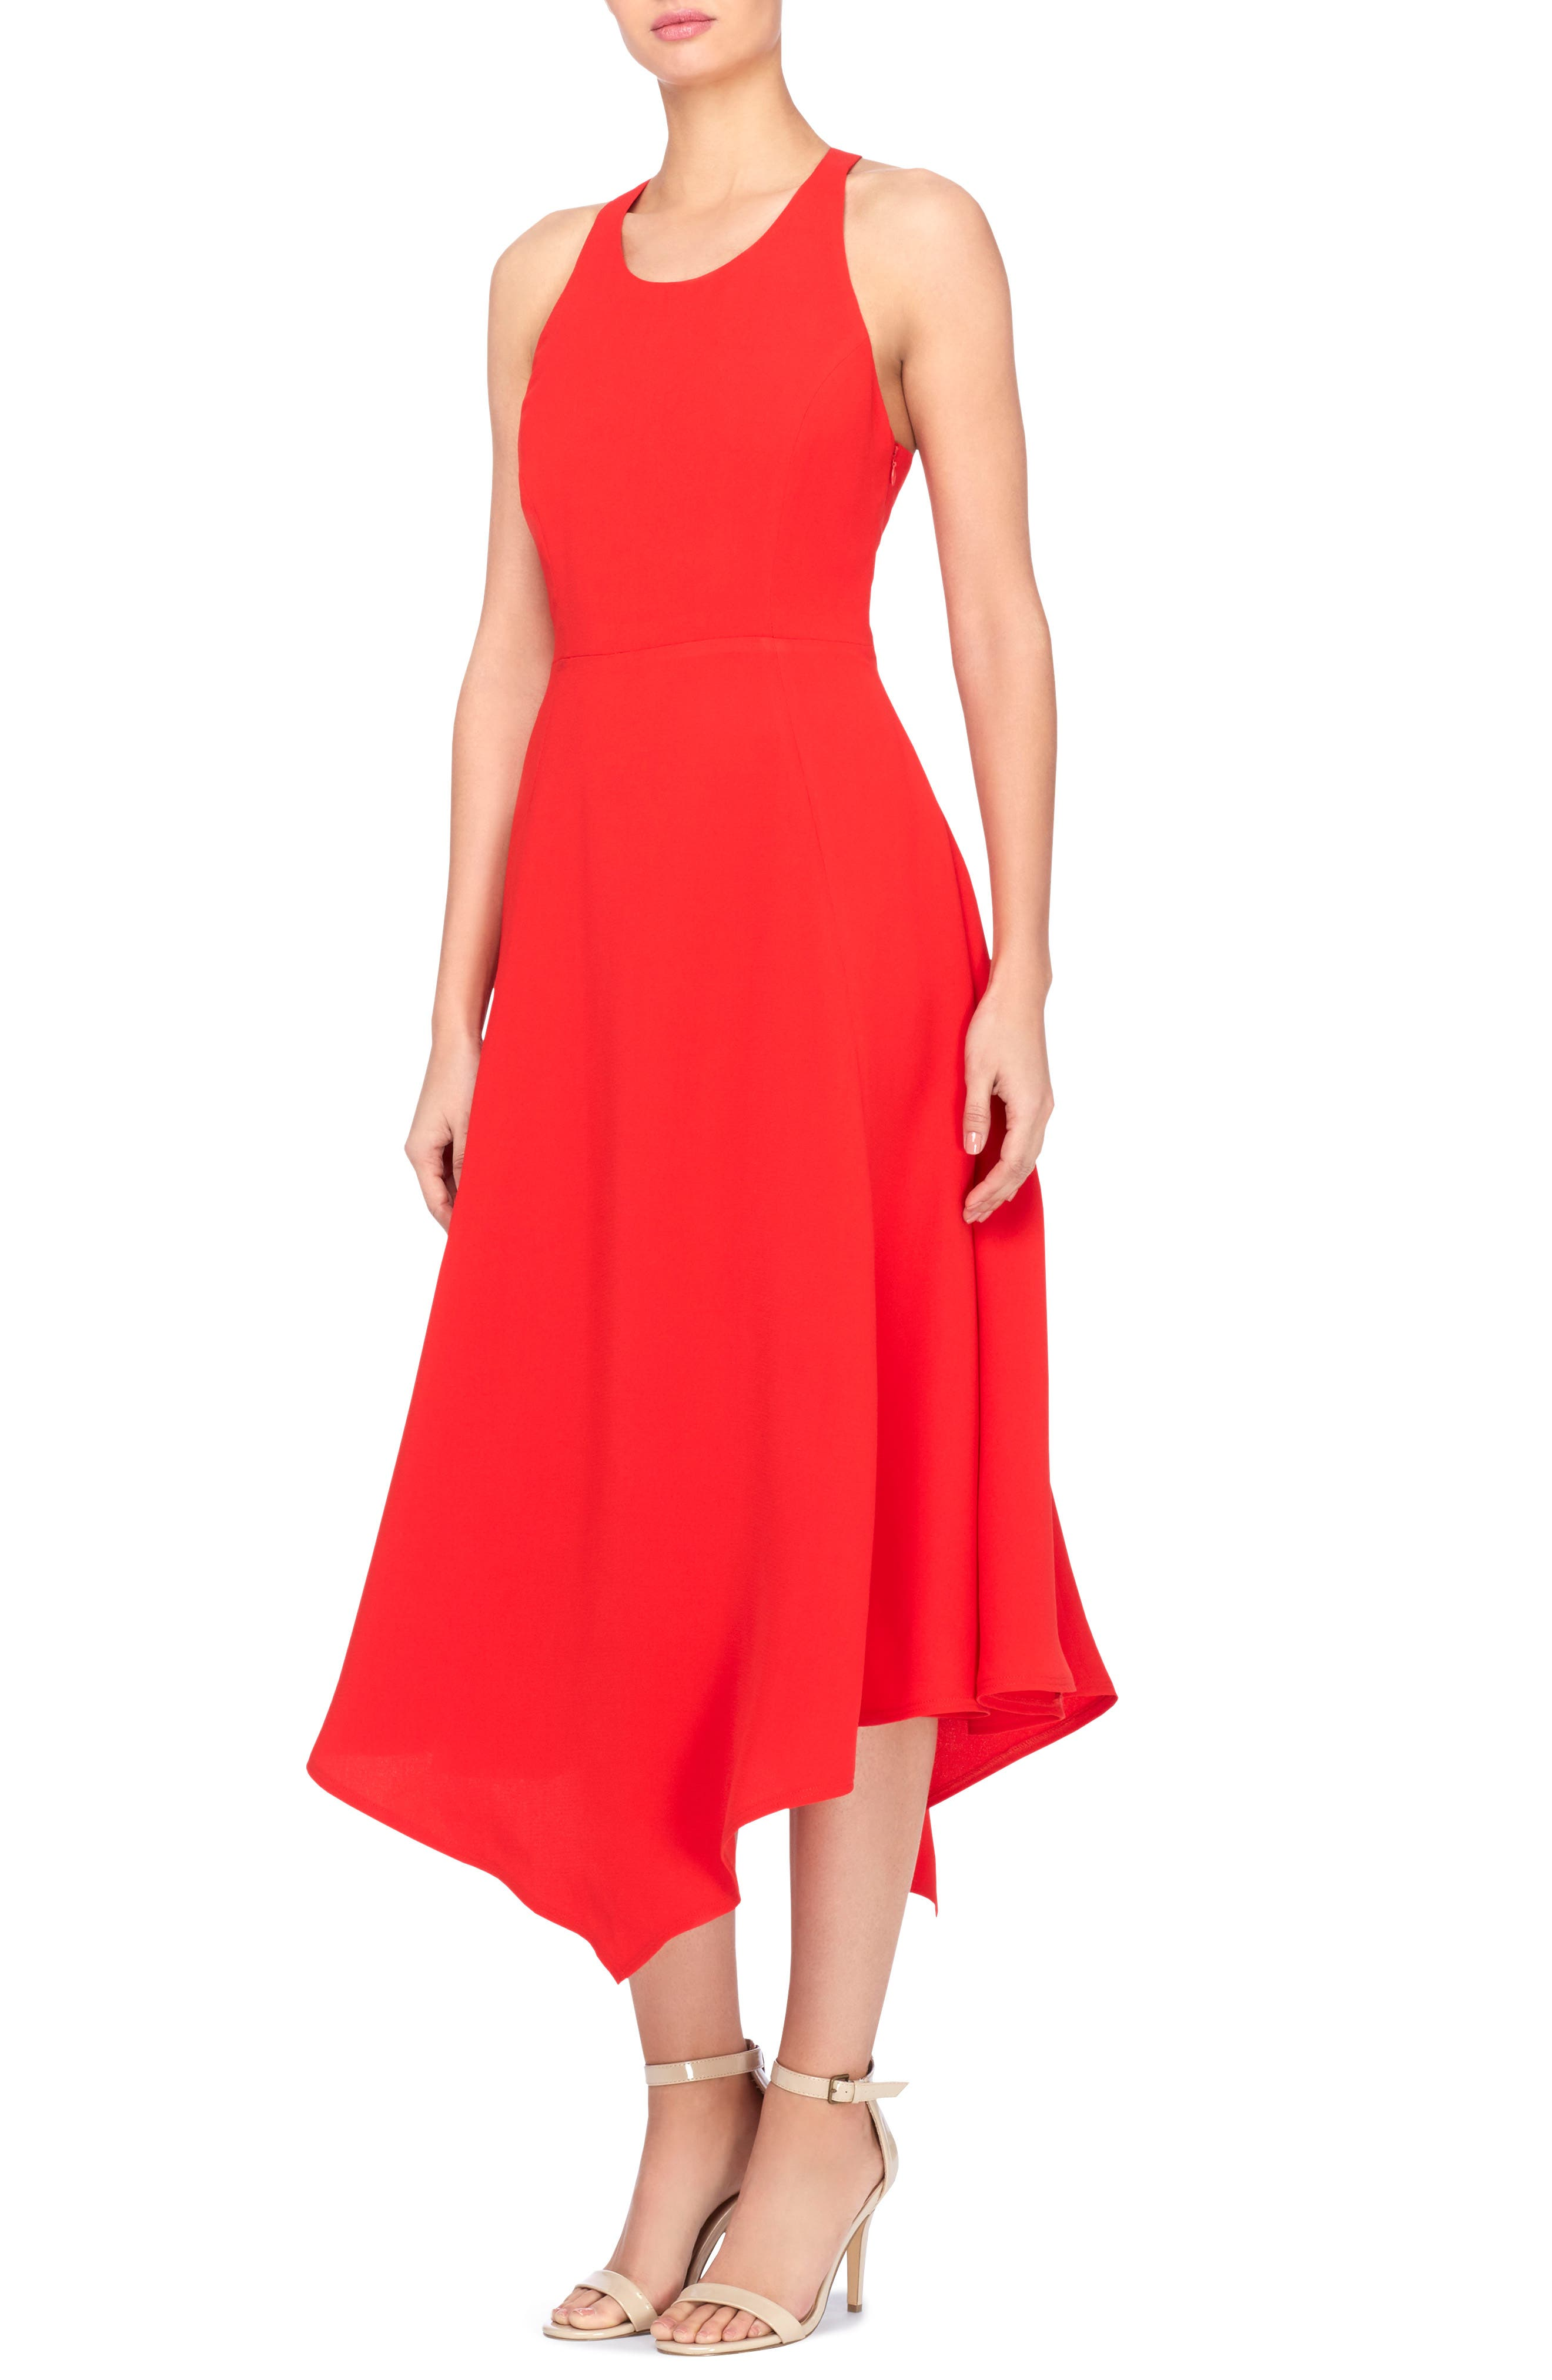 Reggie T-Back Fit & Flare Dress,                         Main,                         color, Tomato Red